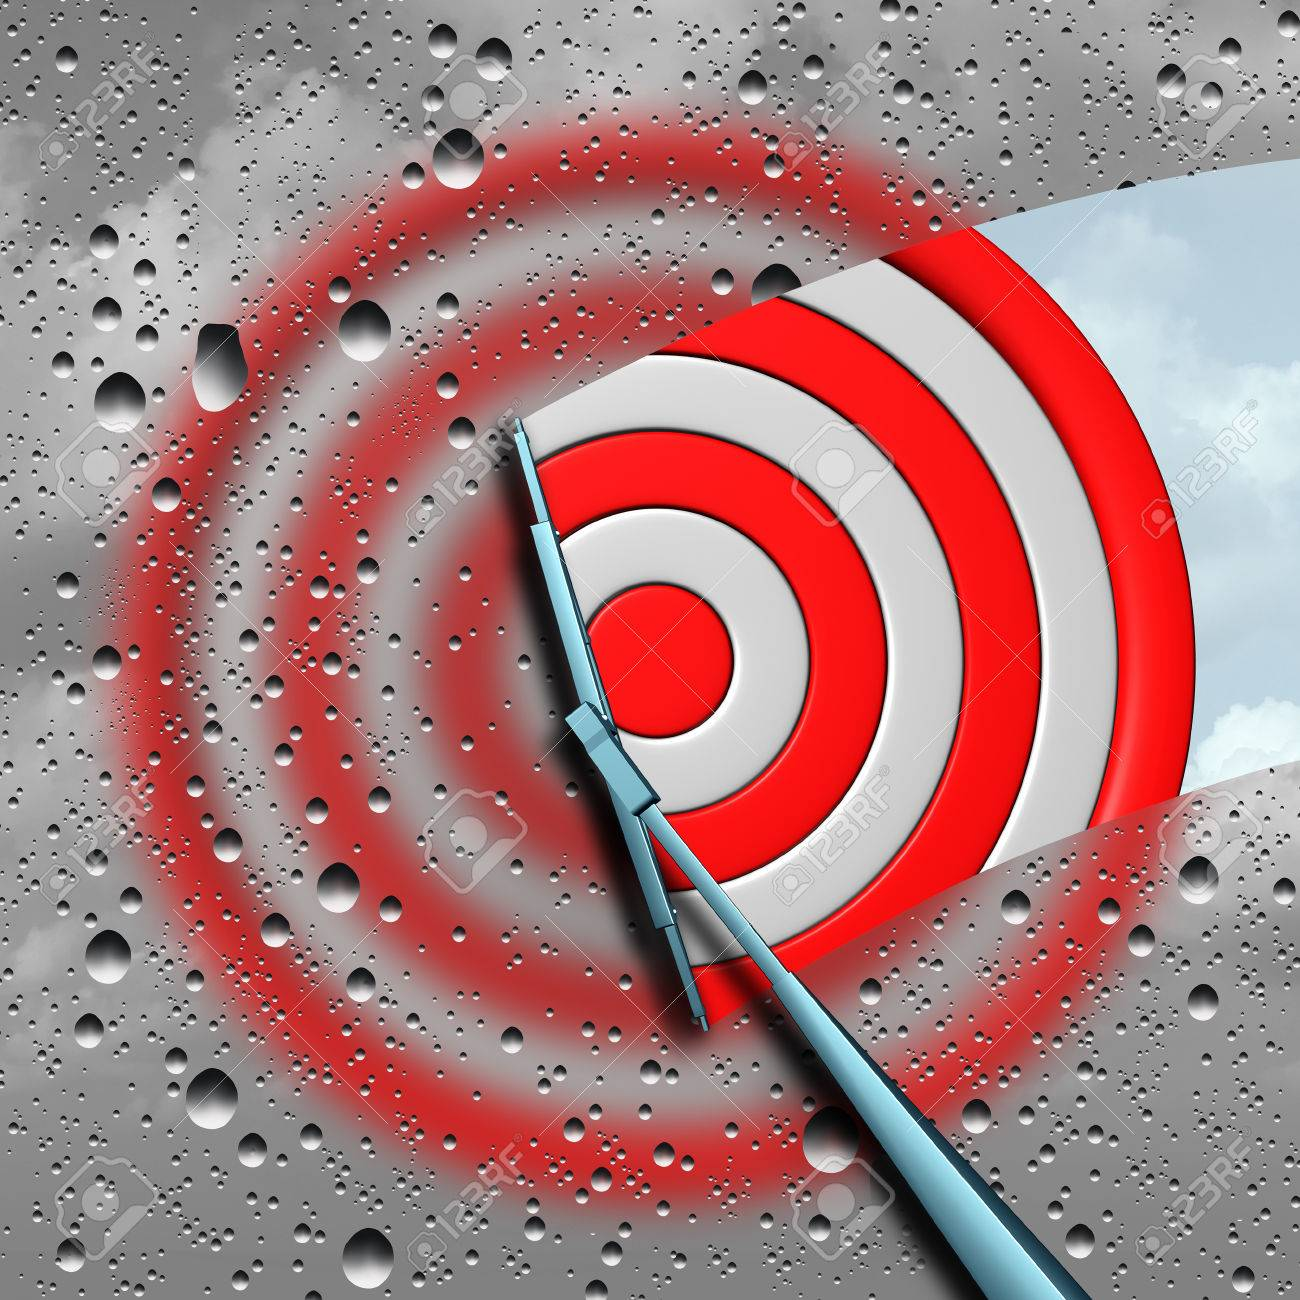 Concept of target as a blurry wet bulls eye dart target board being cleaned by a wiper as a business metaphor for clear focus or focused aim icon as a 3D illustration. Standard-Bild - 64818603